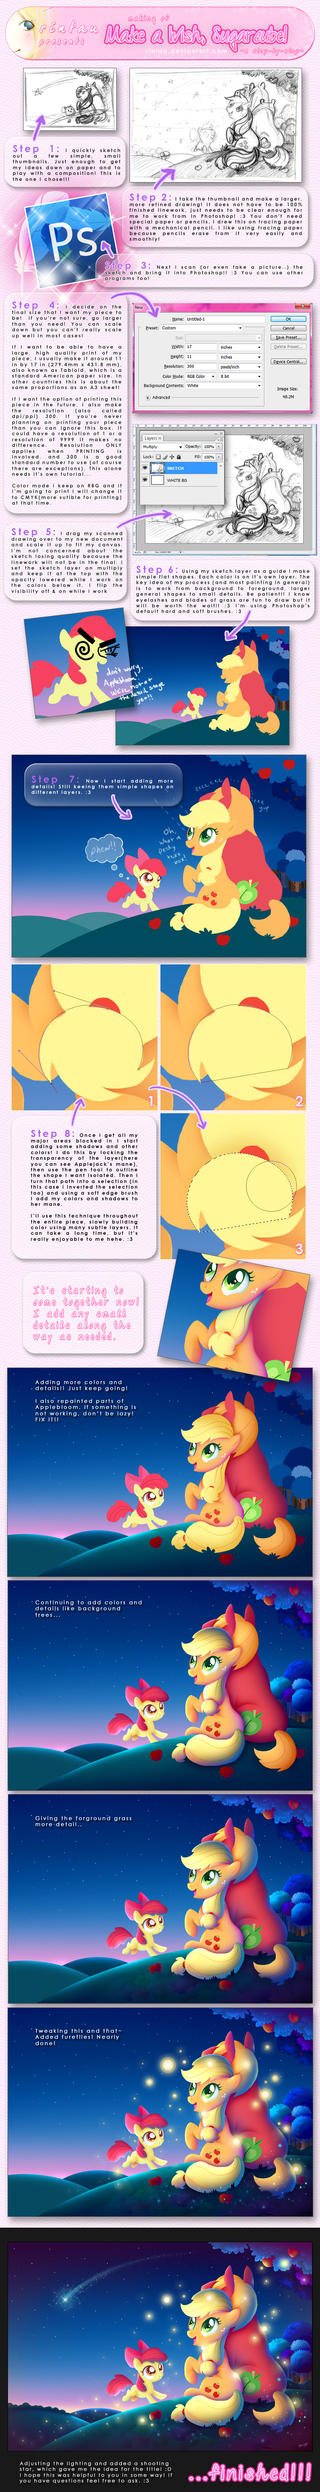 Making of : Make a Wish, Sugarcube! by rincharmie